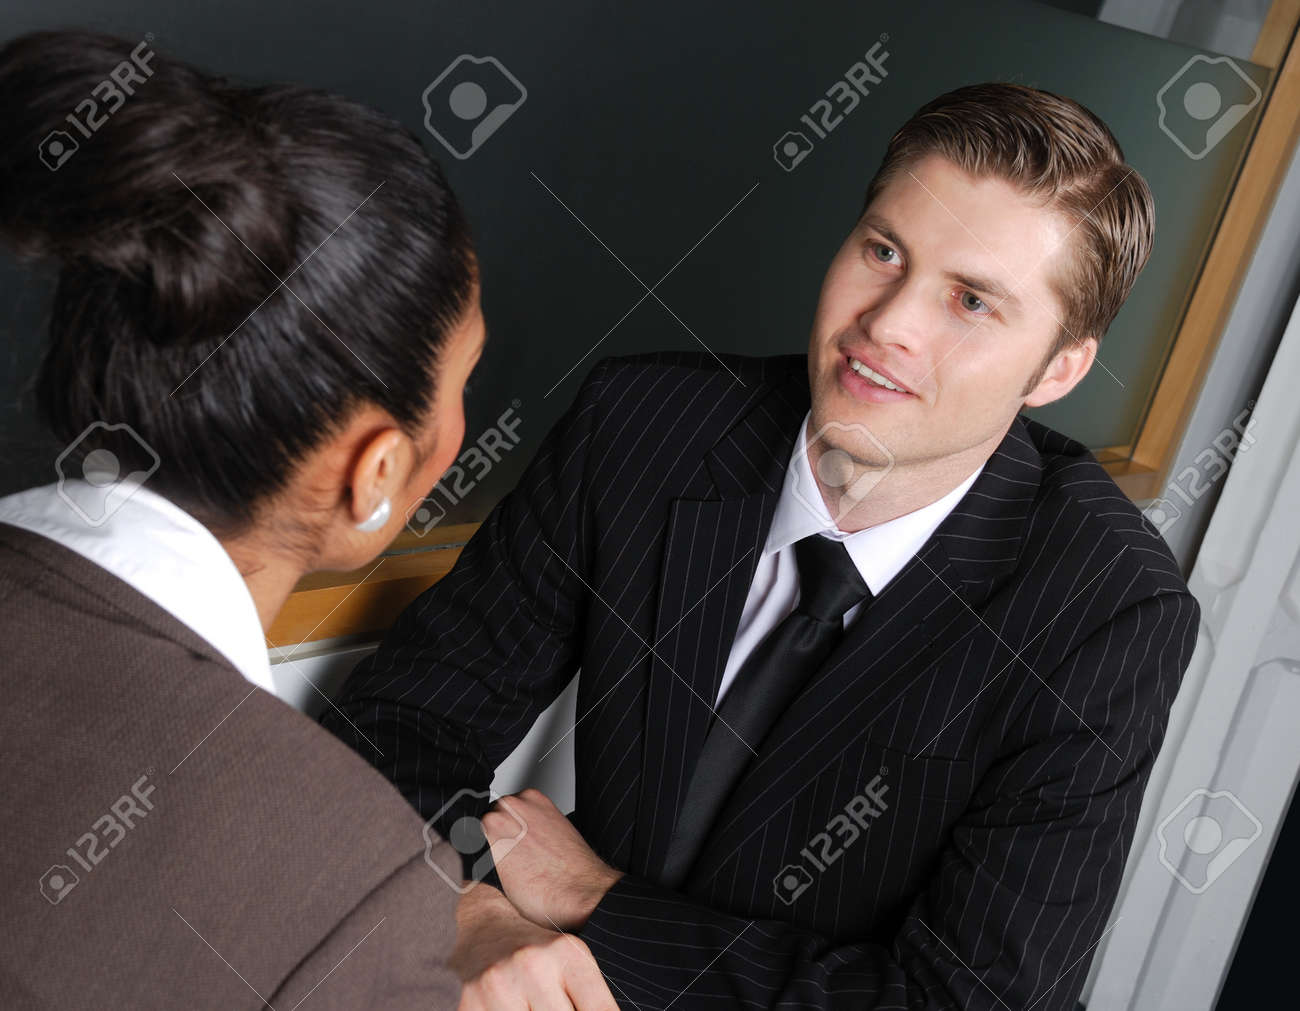 This is an image of a business team having a discussion. Stock Photo - 9436572